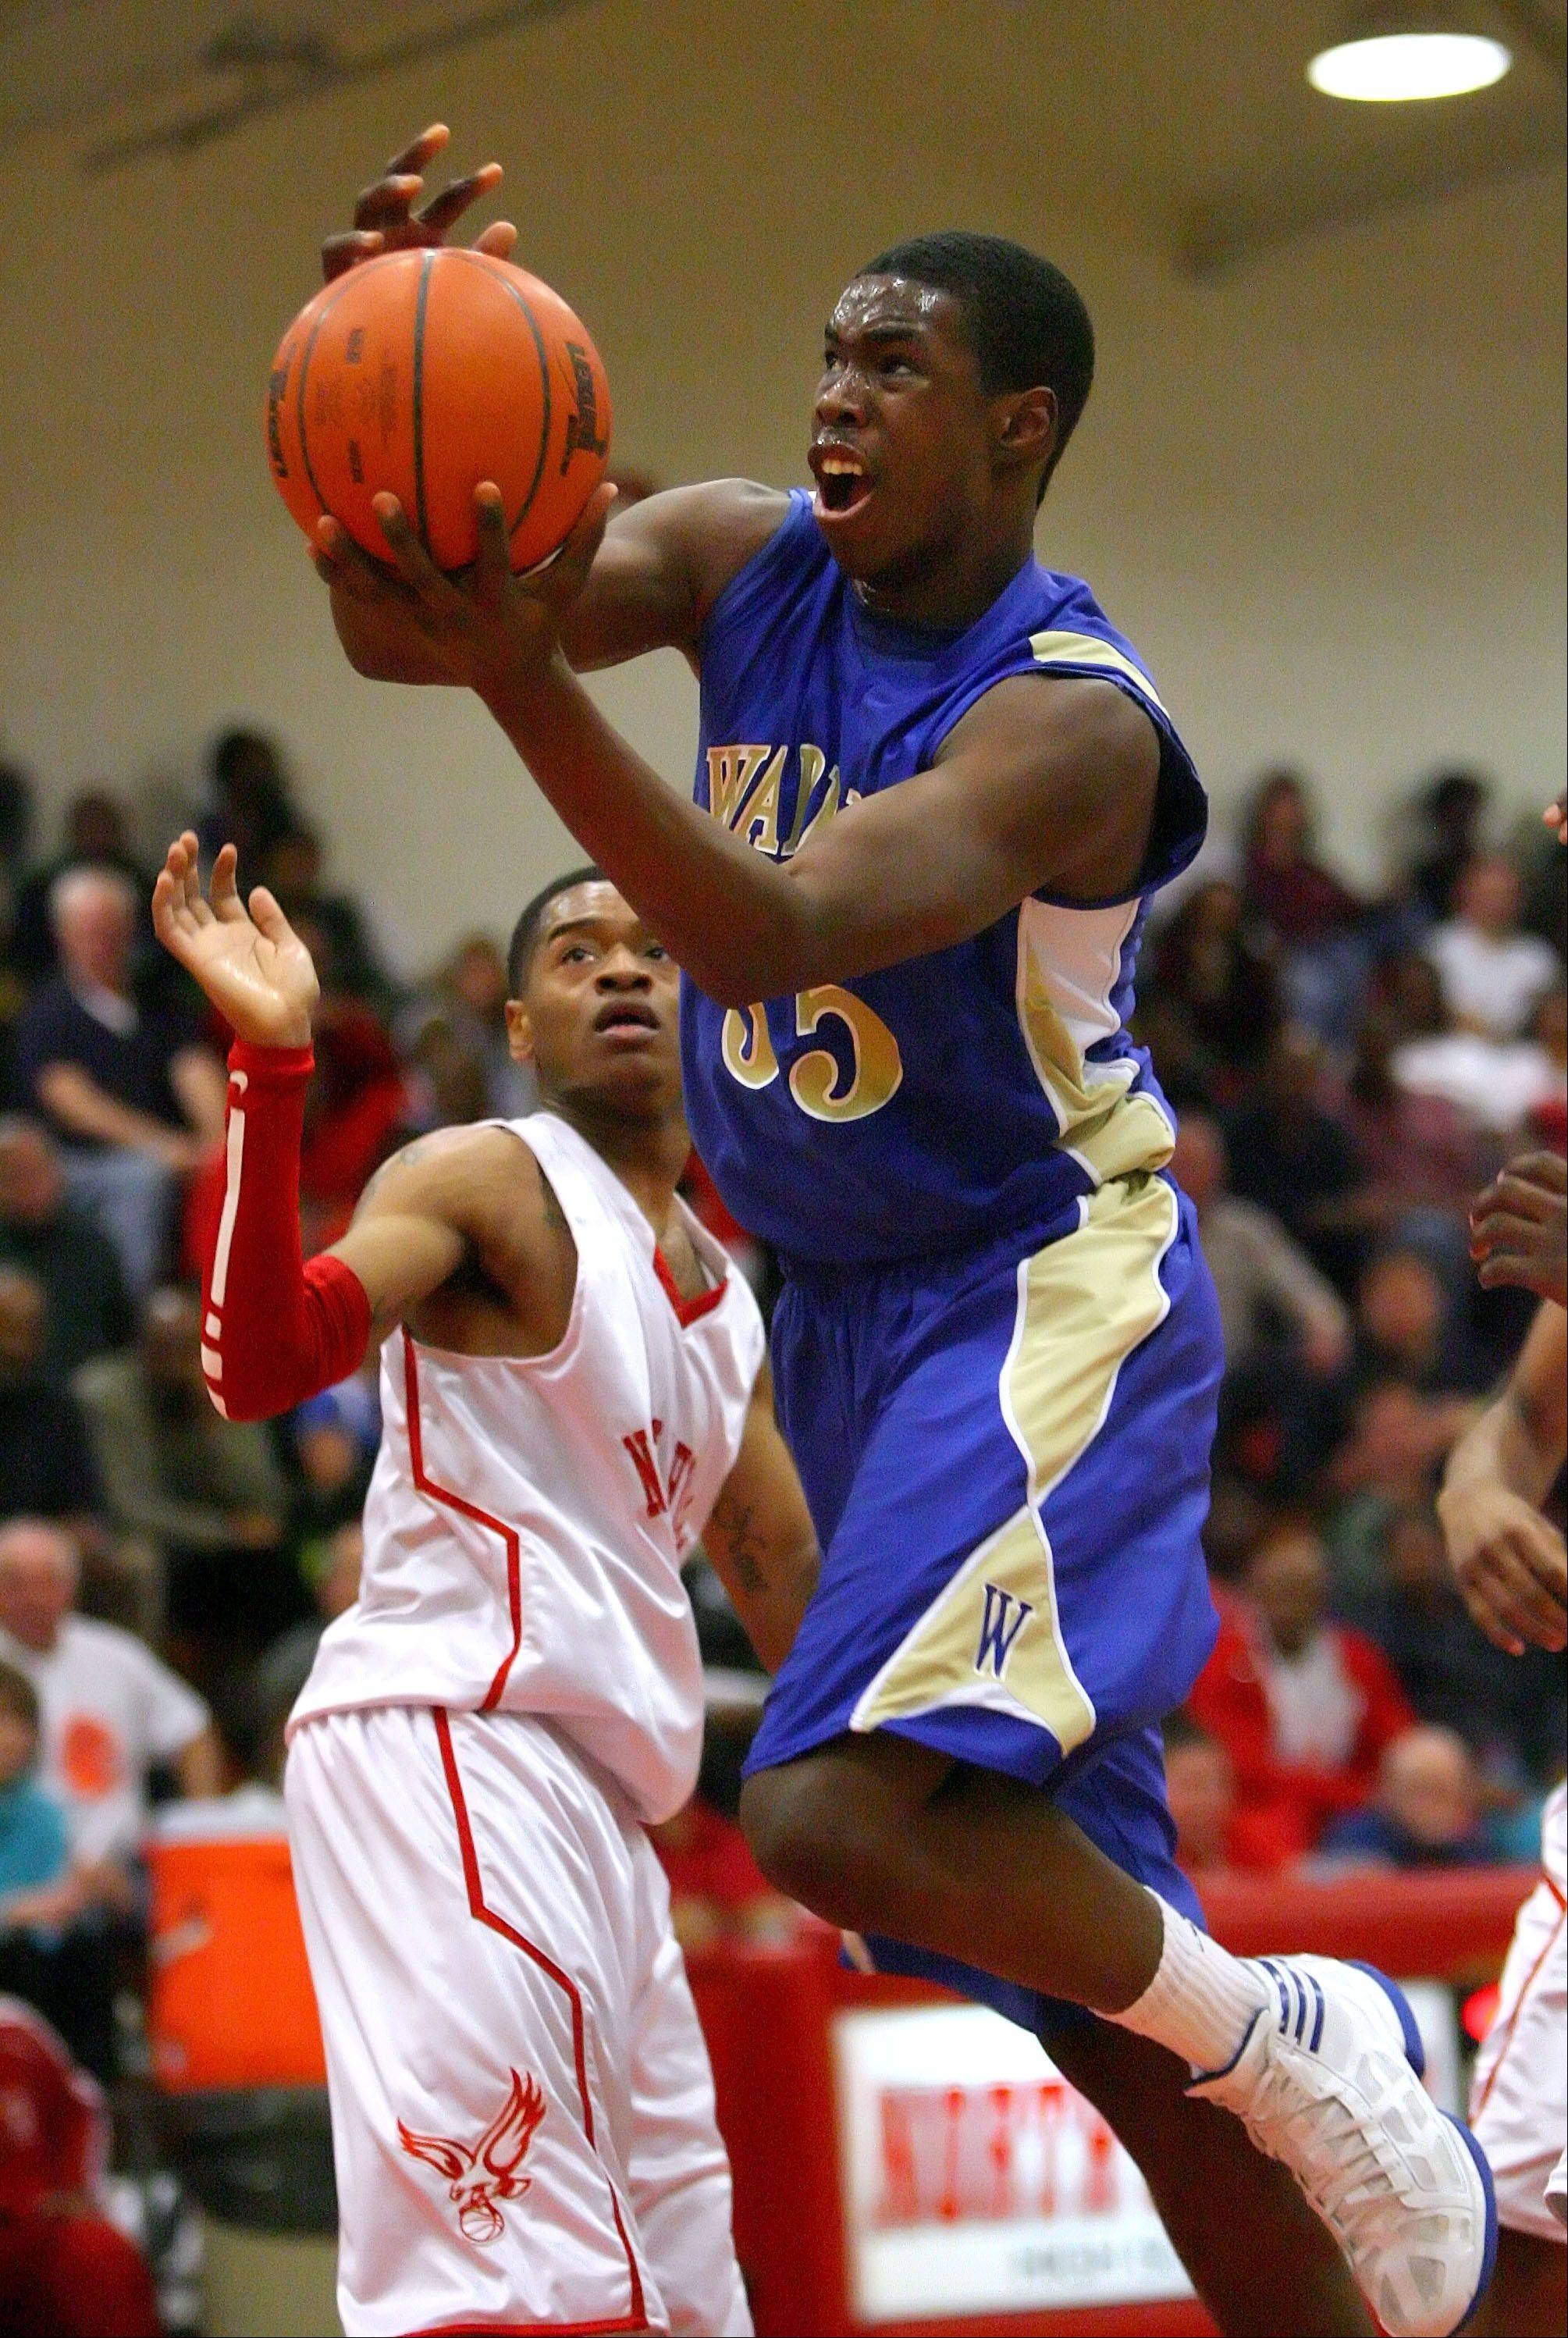 Warren's Darius Paul, right, drives past North Chicago's Aaron Simpson during Wednesday's game in North Chicago.